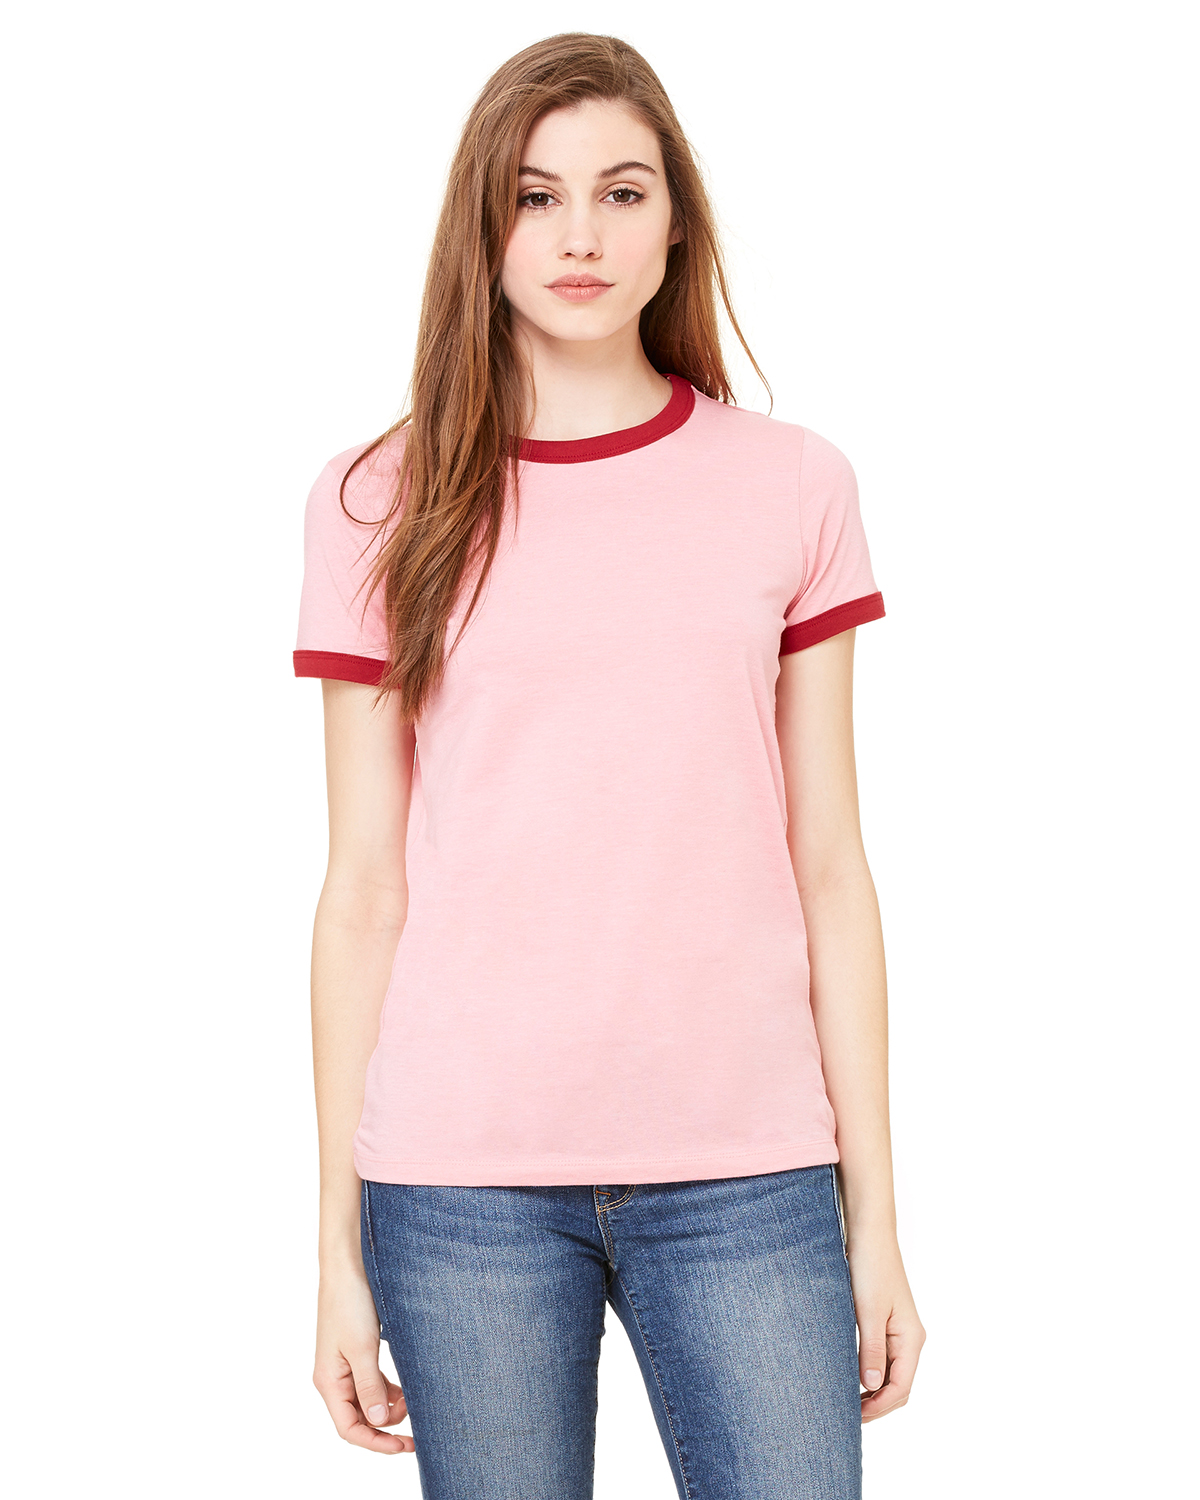 click to view Heather Pink/Cardinal